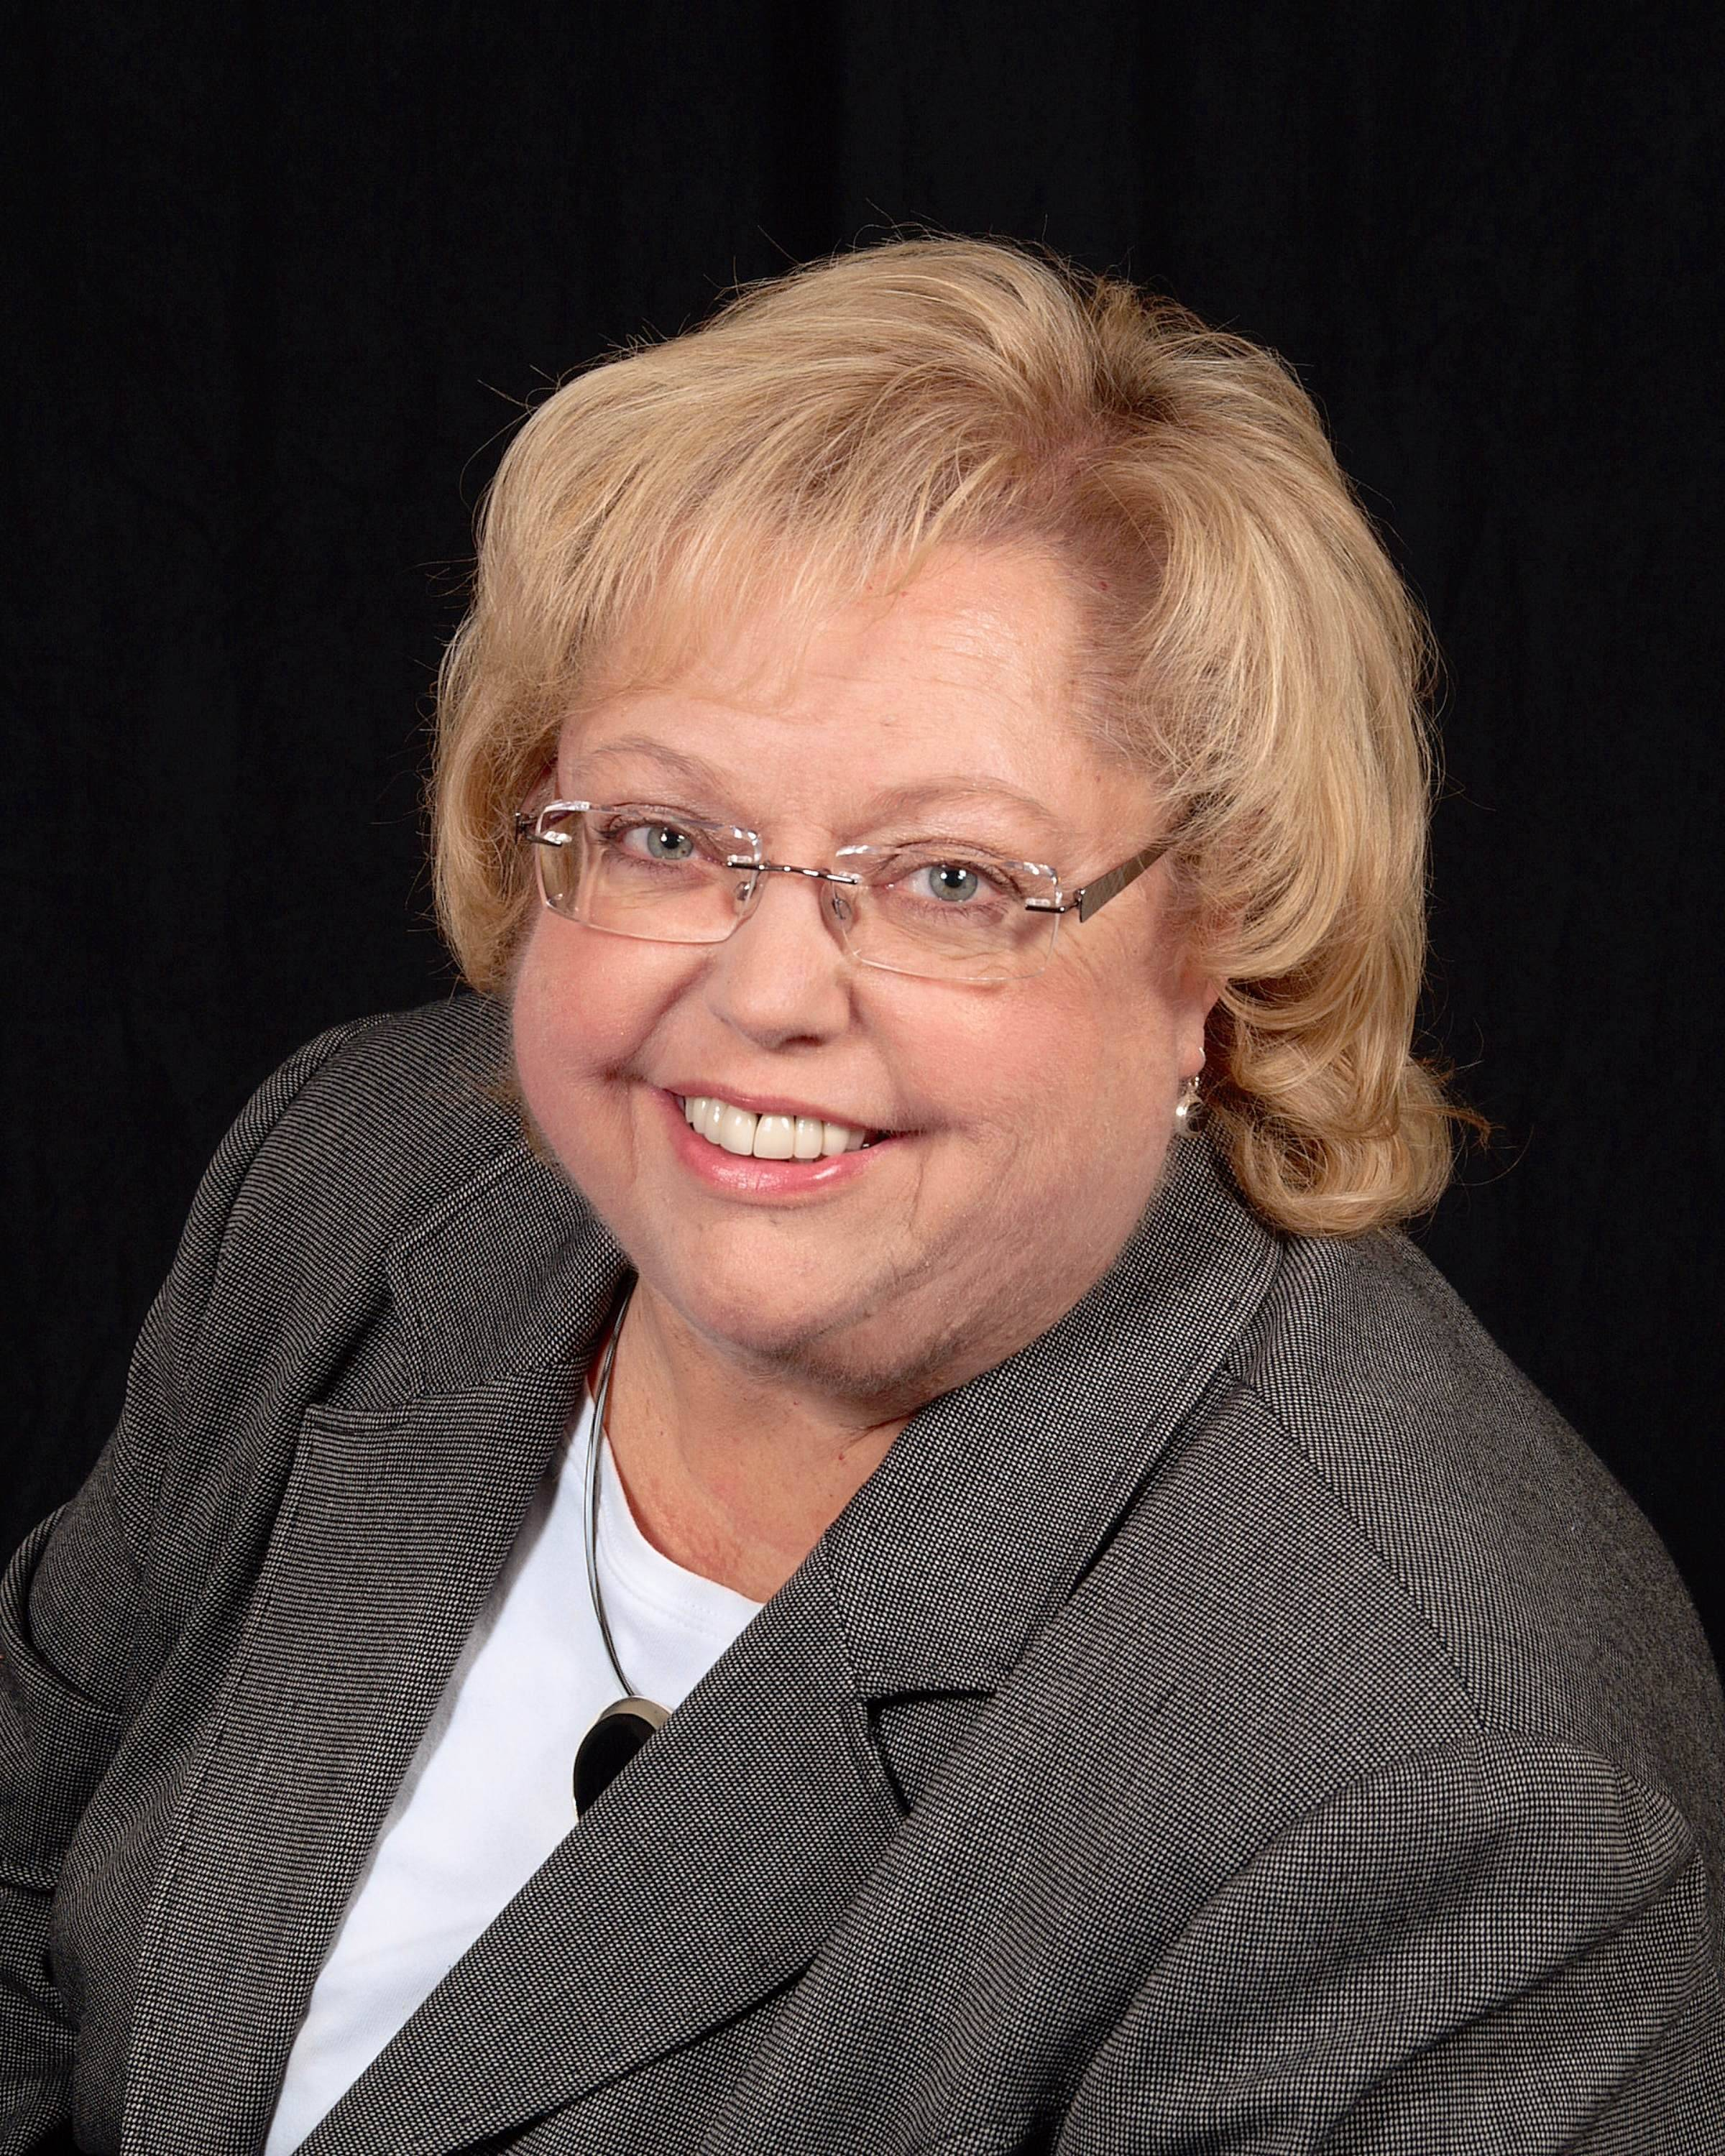 Jeanne Kearby, running for Avon Township Board (4-year Terms)